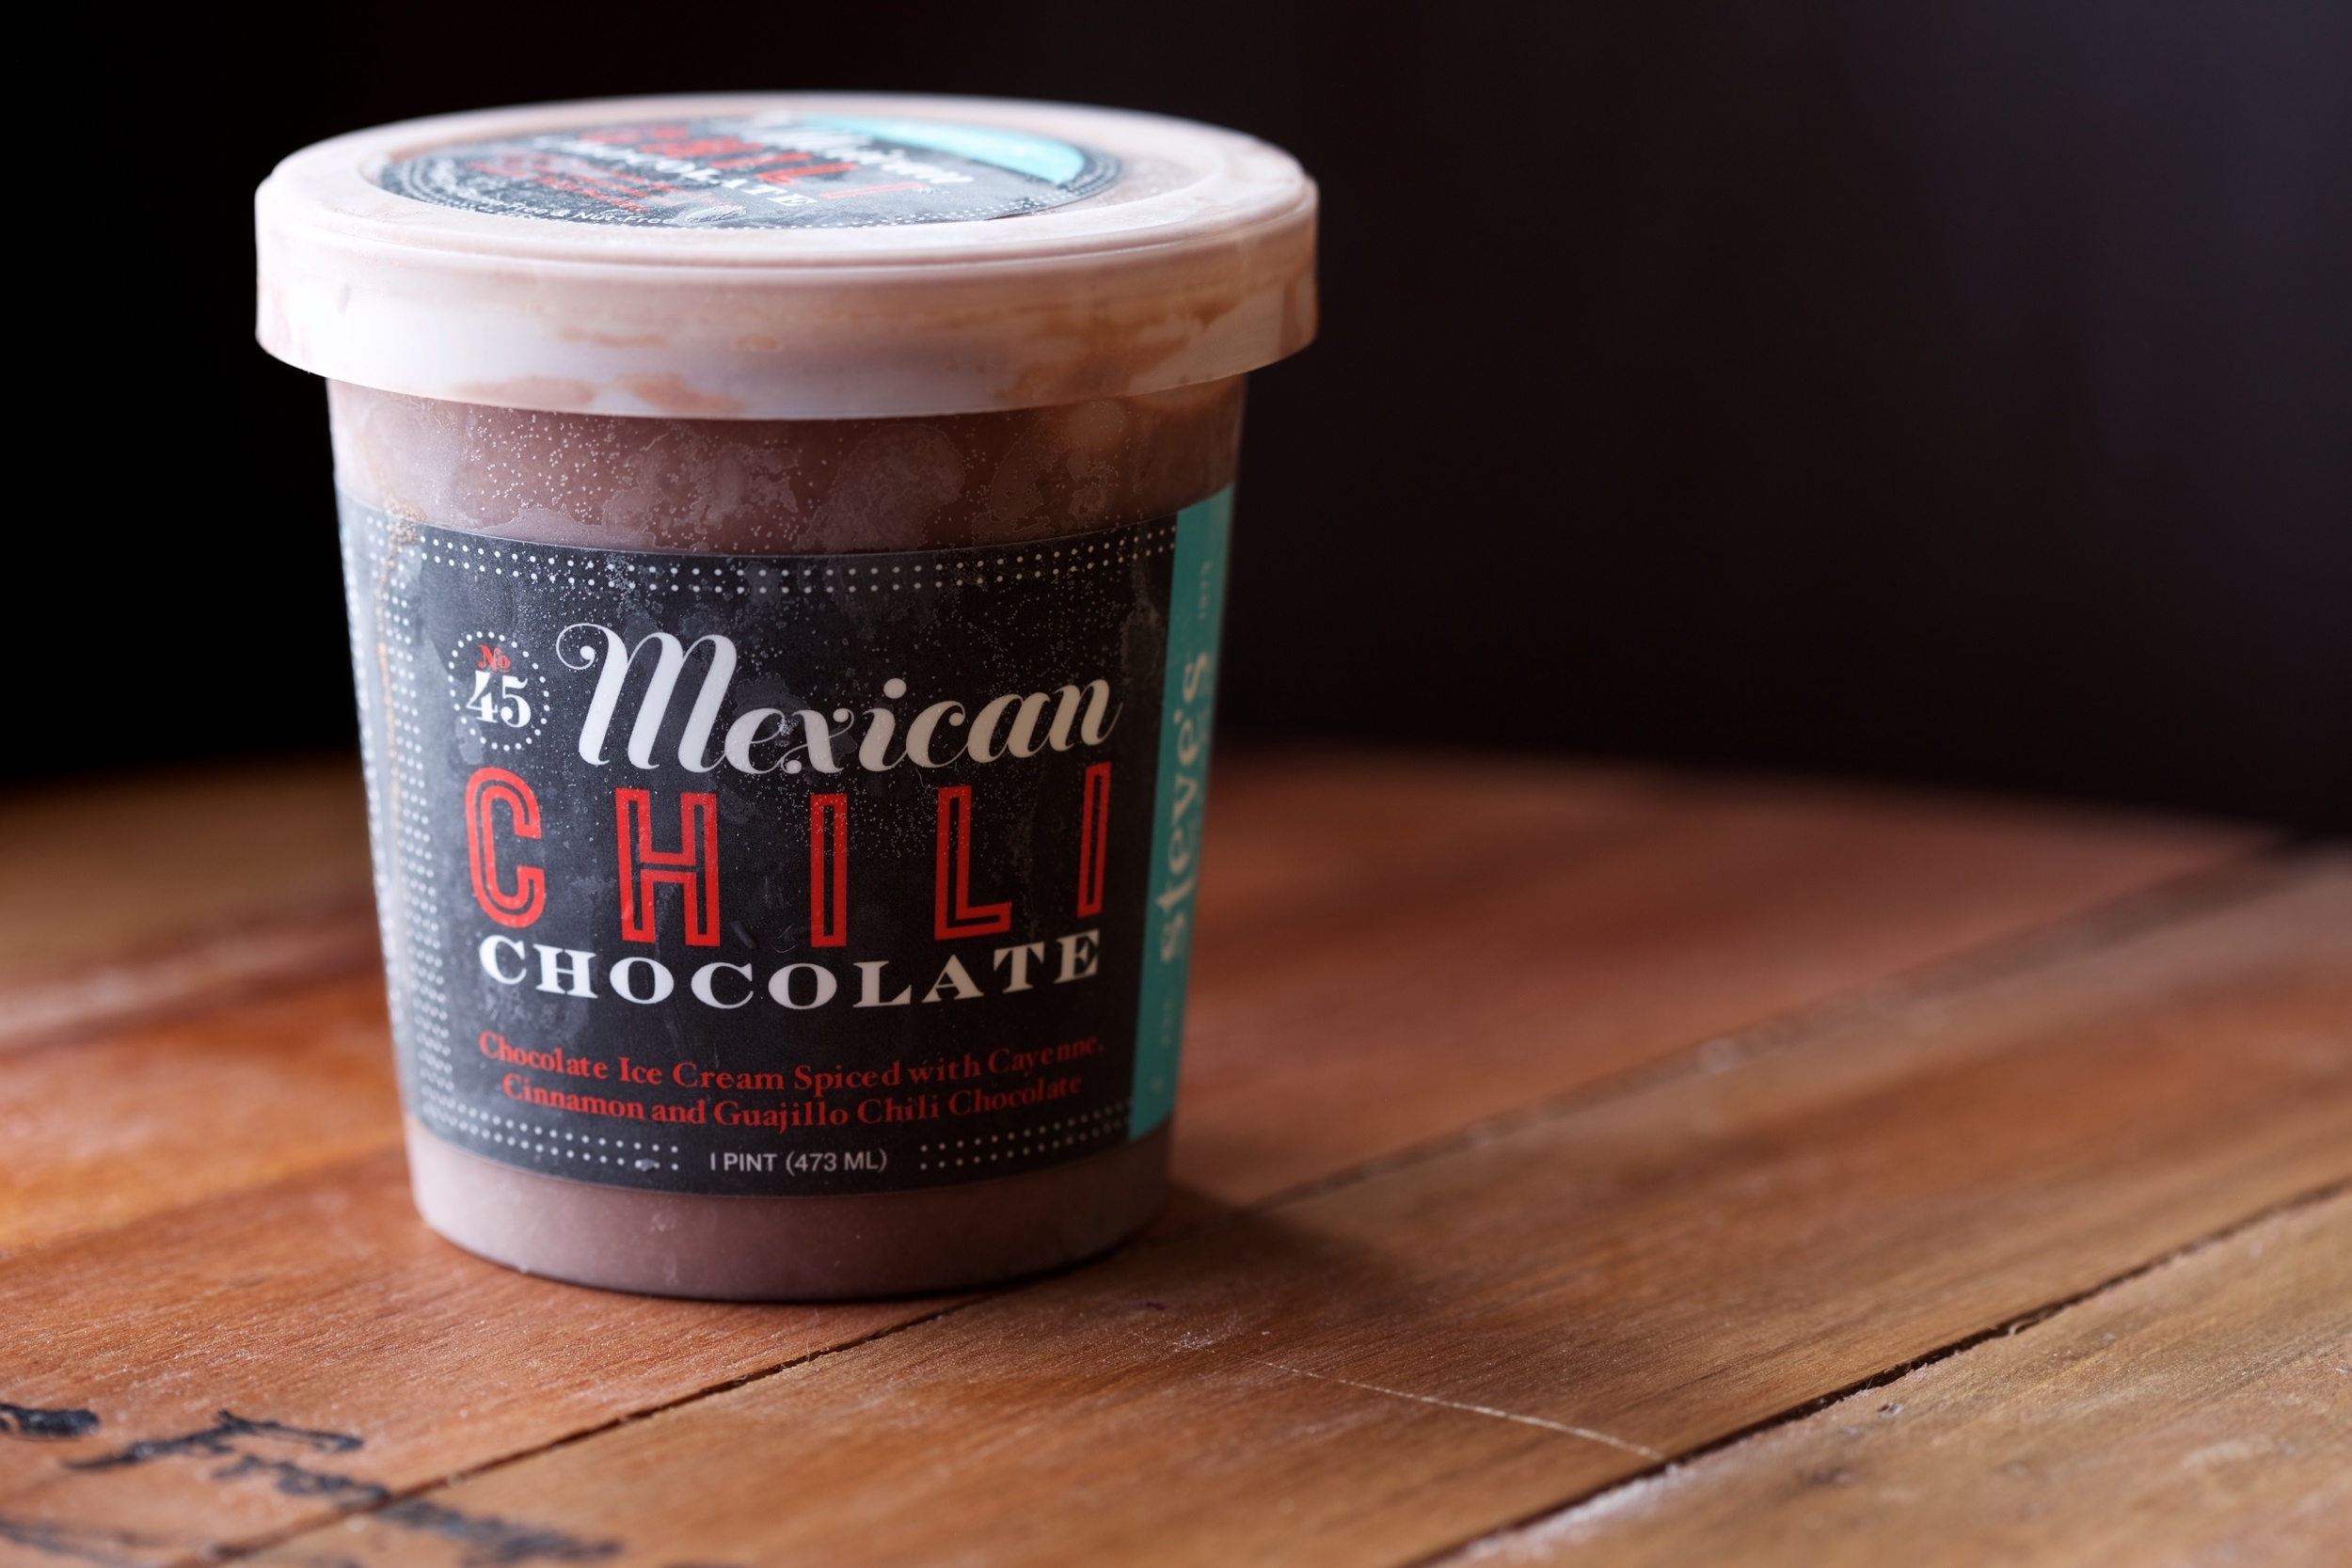 If you enjoy Mexican hot chocolate or Mexican chocolate in general, you will LOVE THIS. And if you haven't you still will LOVE THIS.